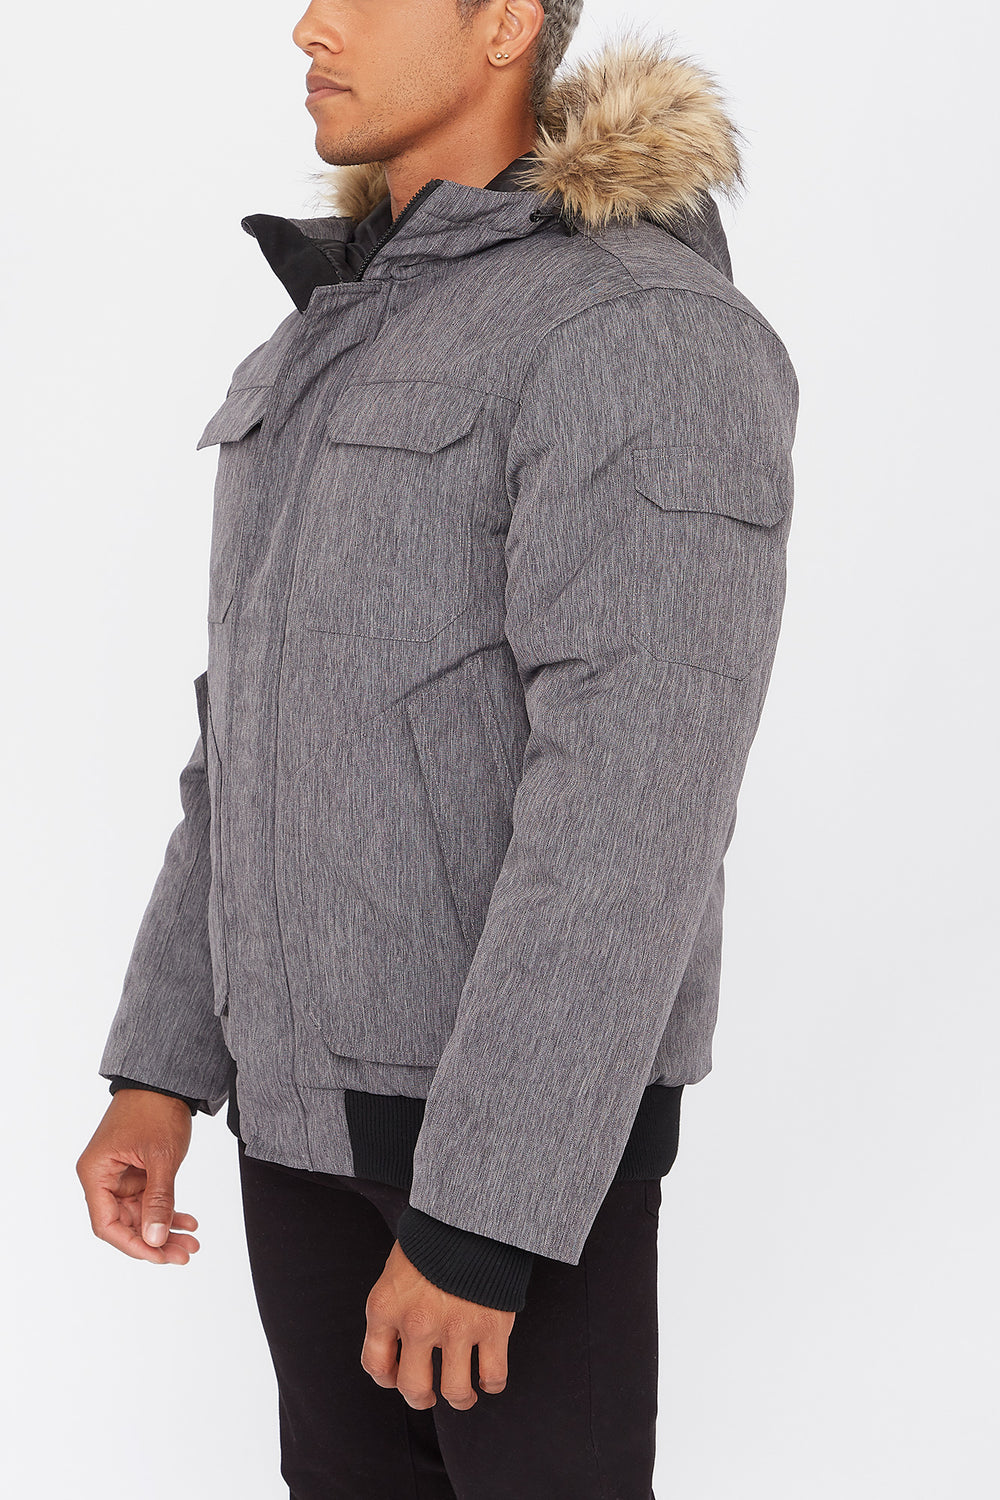 West49 Poly-Fill Bomber Jacket Charcoal